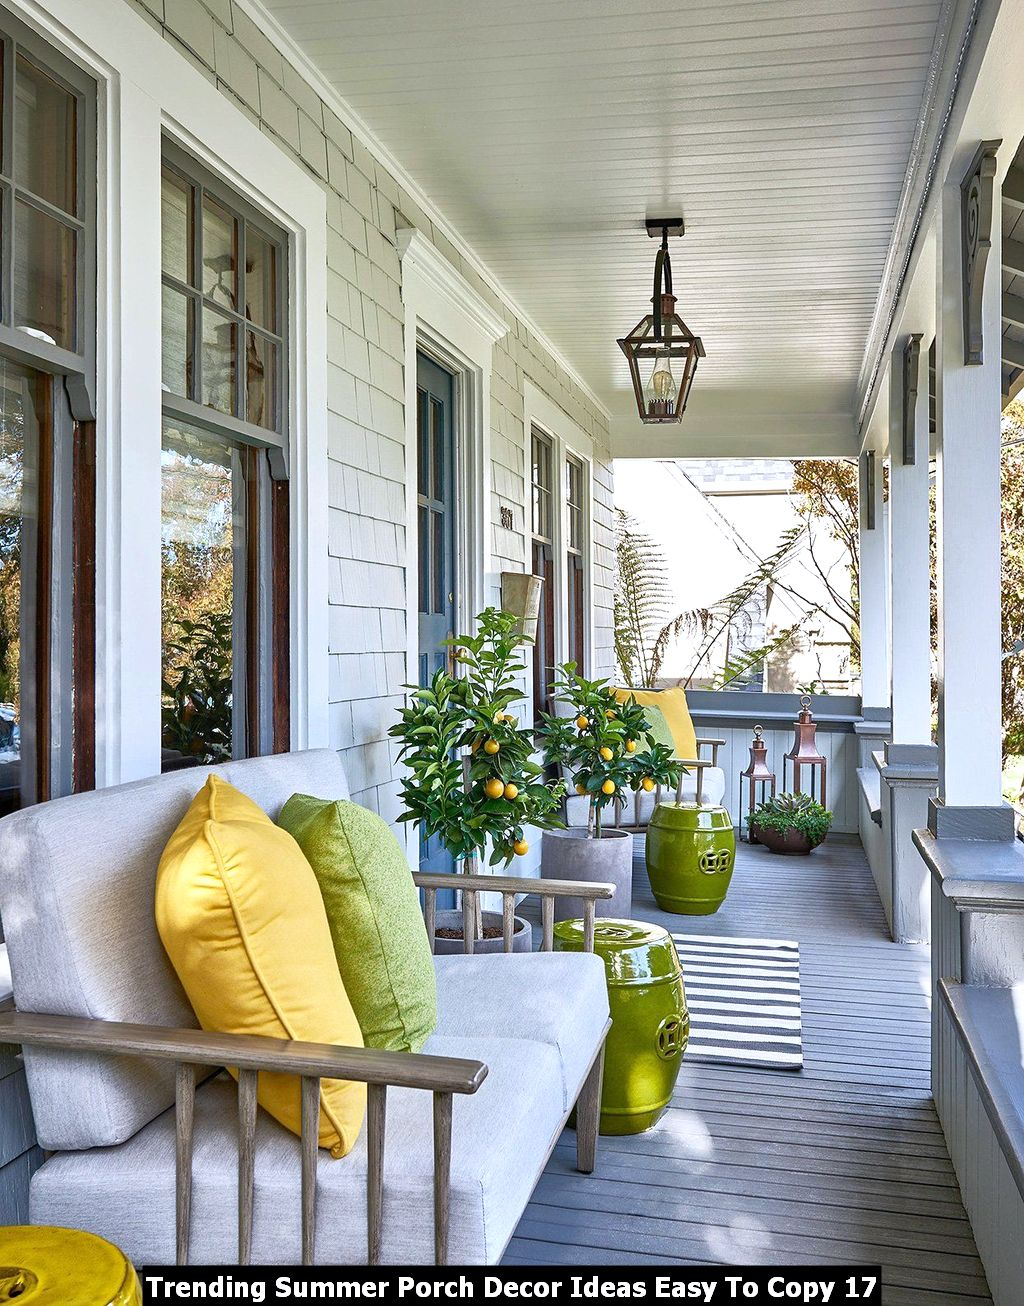 Trending Summer Porch Decor Ideas Easy To Copy 17